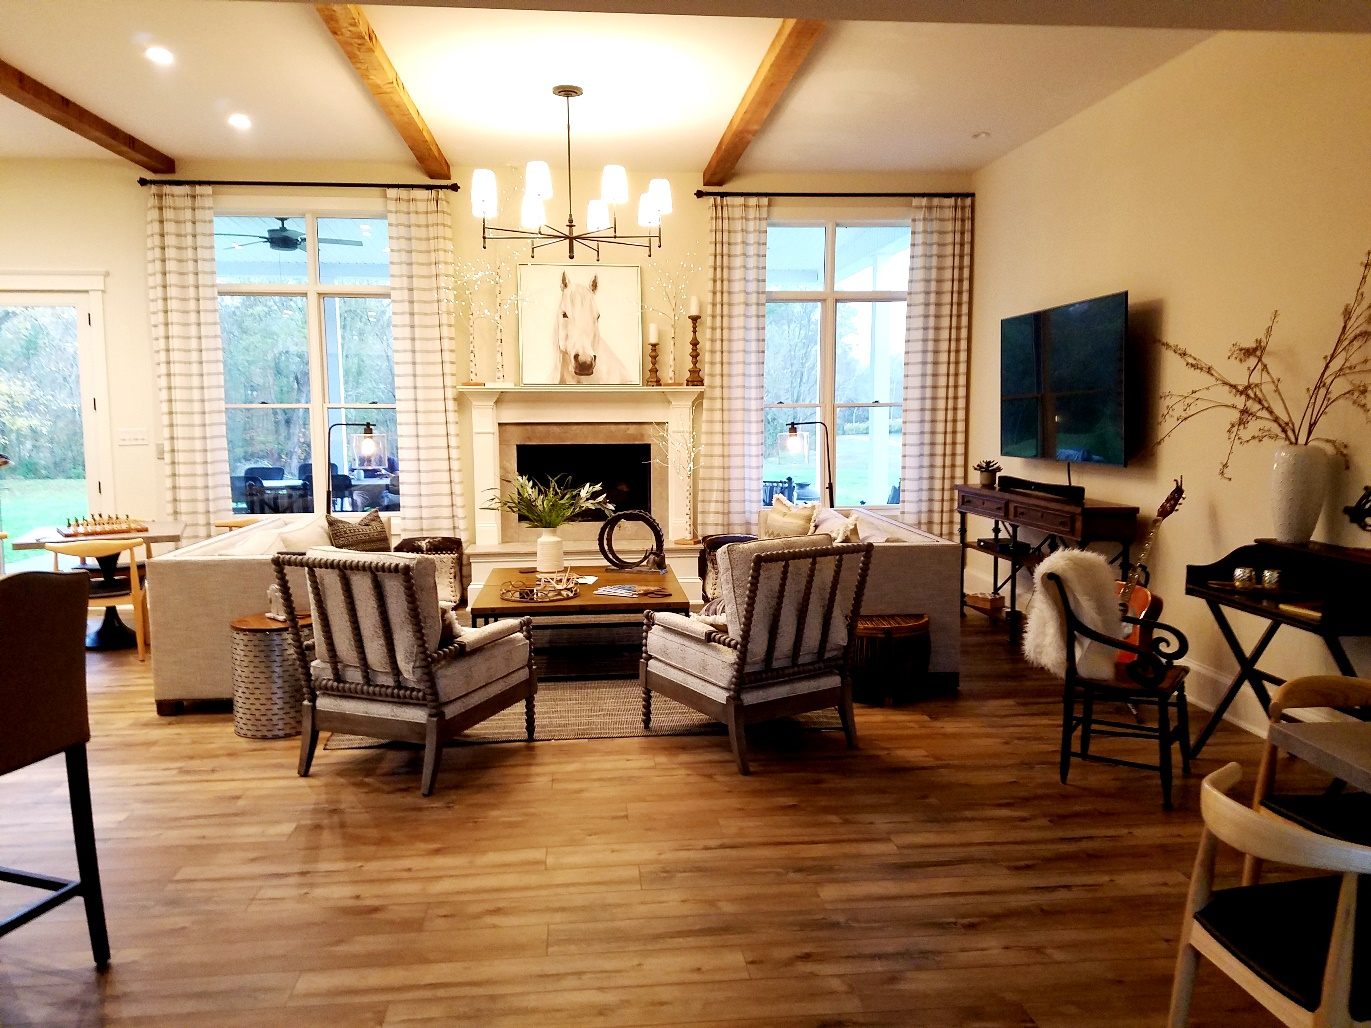 Photo Credit: Wine Casual, White Horse Winery Farmhouse living room. Wine Casual